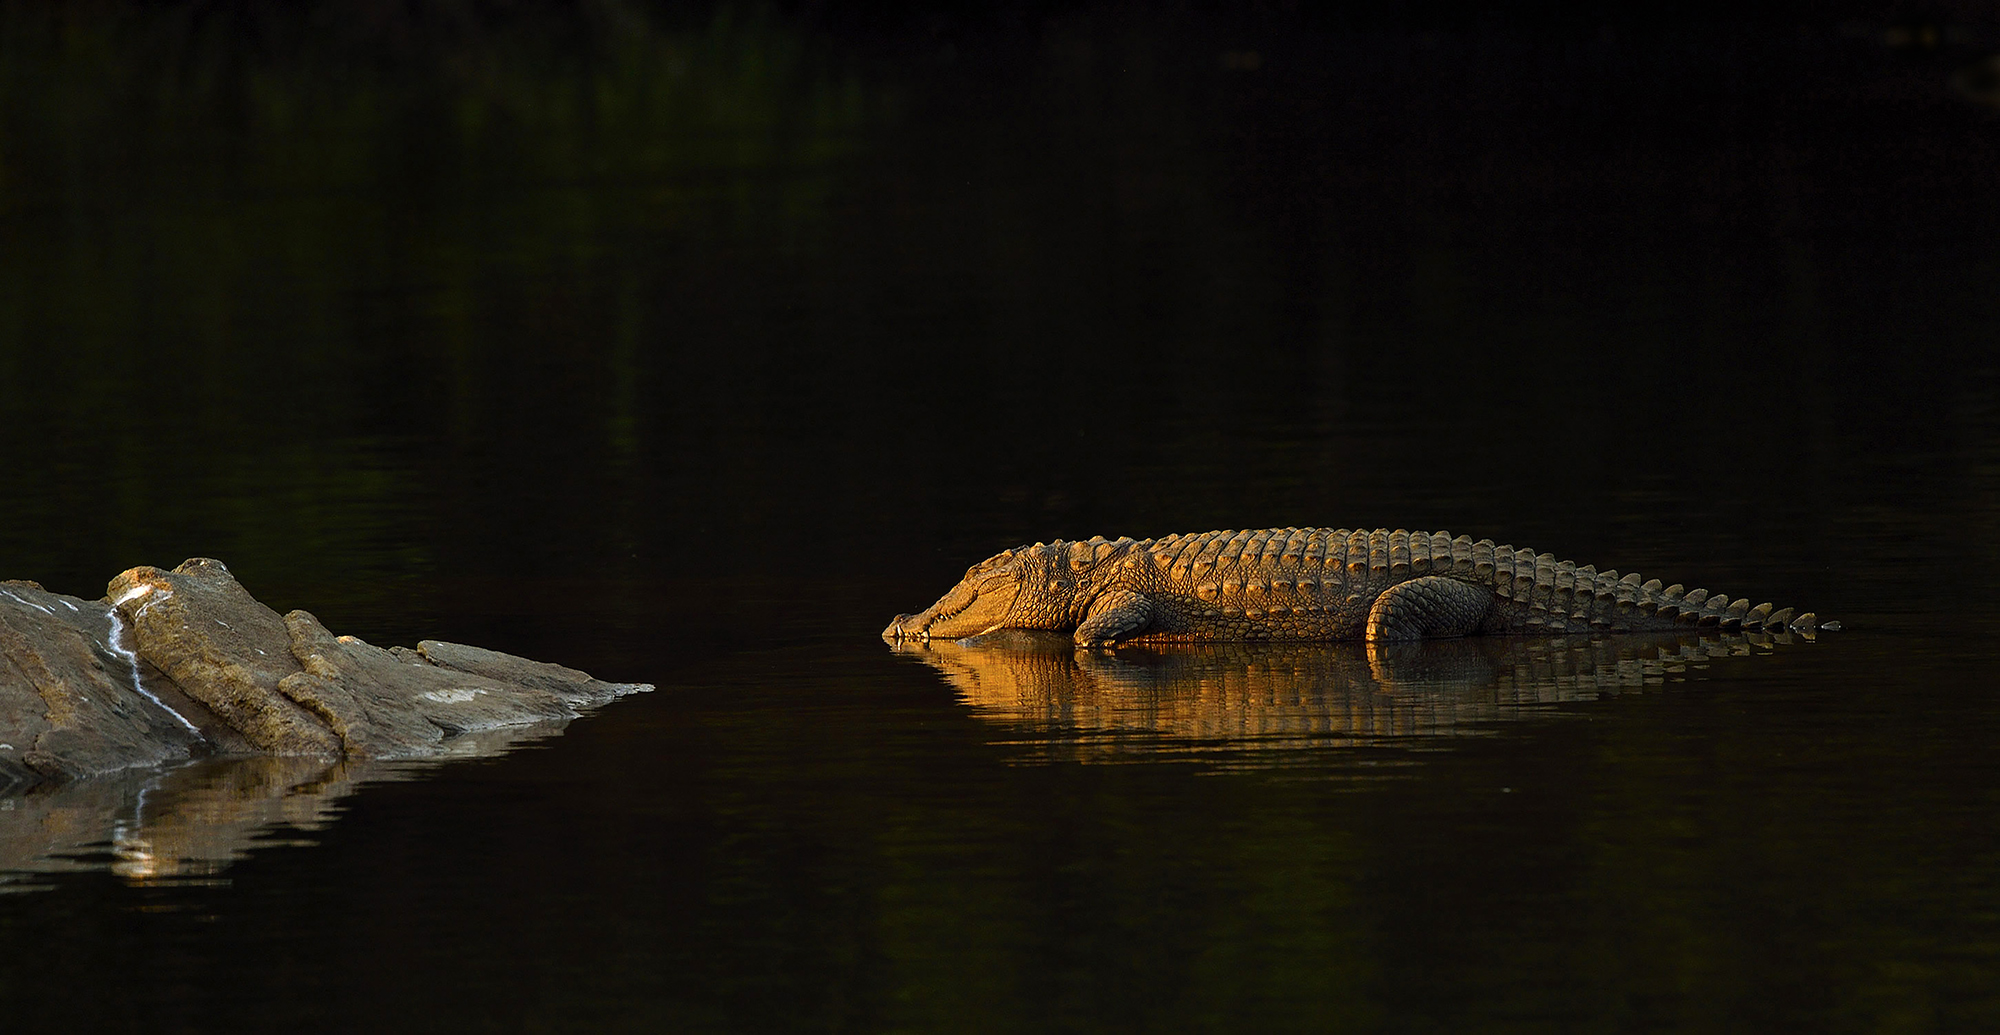 This image was shot at Rangathittu Bird Santuary, Karnataka on a late evening with the golden light falling on the Crocodile with its reflection in the water